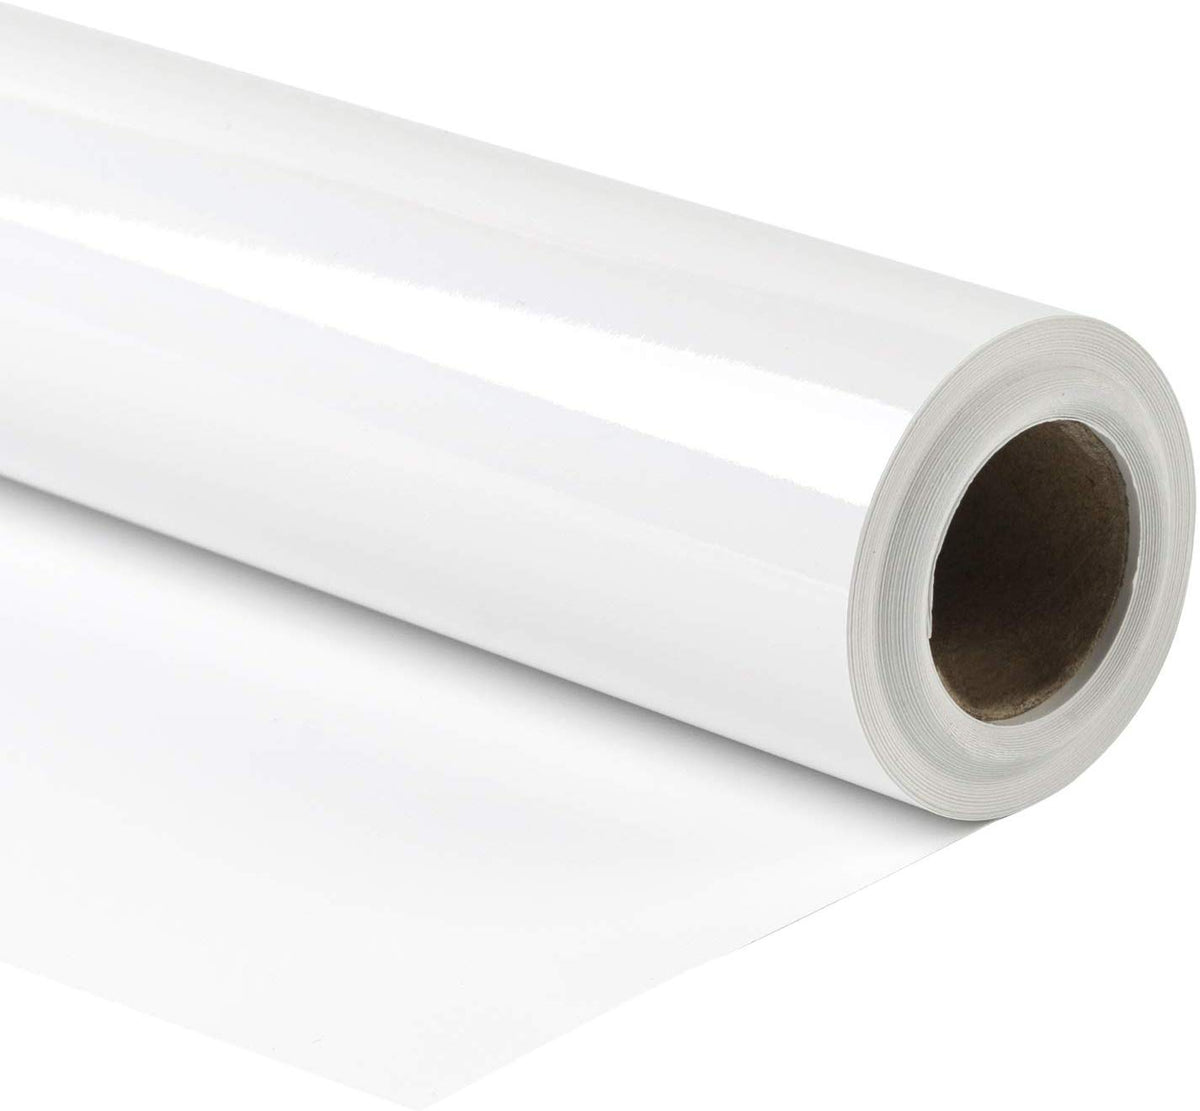 Wrapaholi-Metallic-Wrapping-Paper-Roll-Laser-White-m